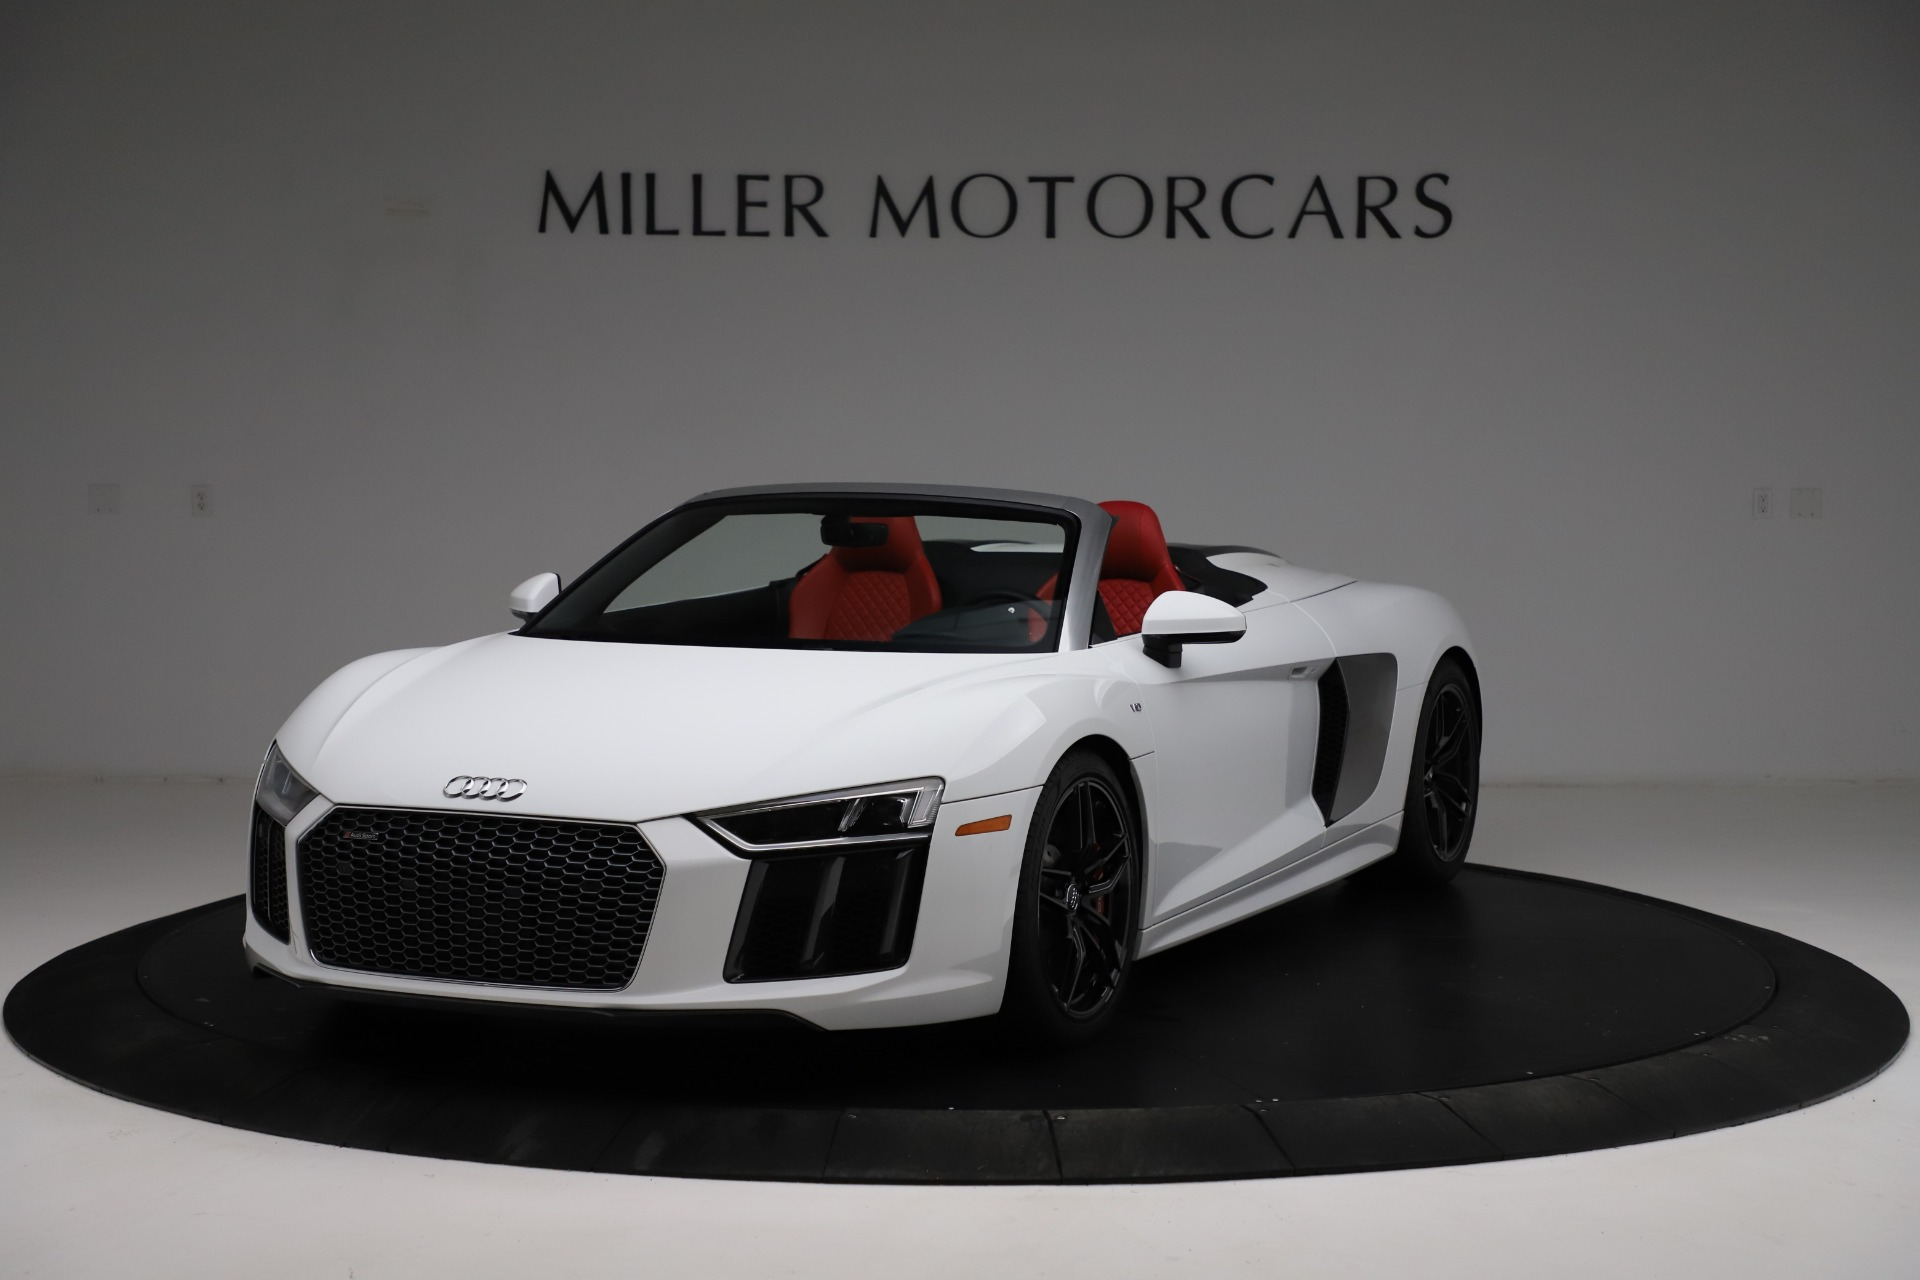 Used 2018 Audi R8 Spyder for sale $154,900 at Rolls-Royce Motor Cars Greenwich in Greenwich CT 06830 1